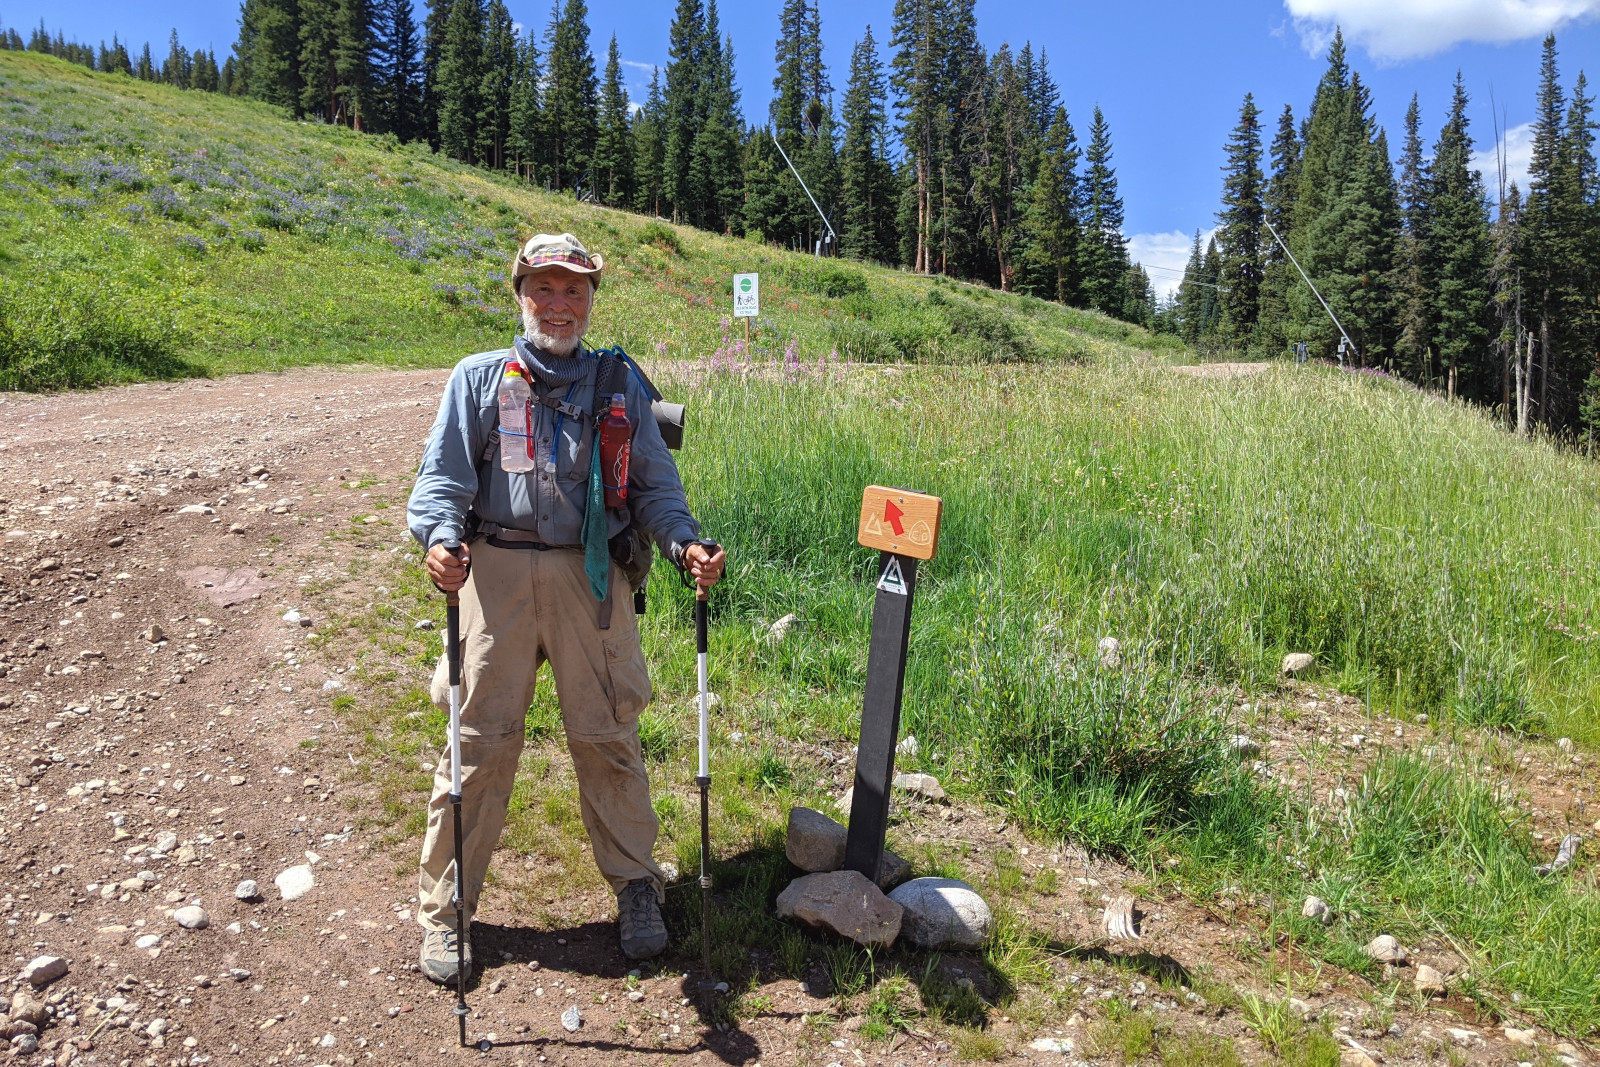 Tartan rejoins the official CDT route (and the Colorado Trail) at Copper Mountain